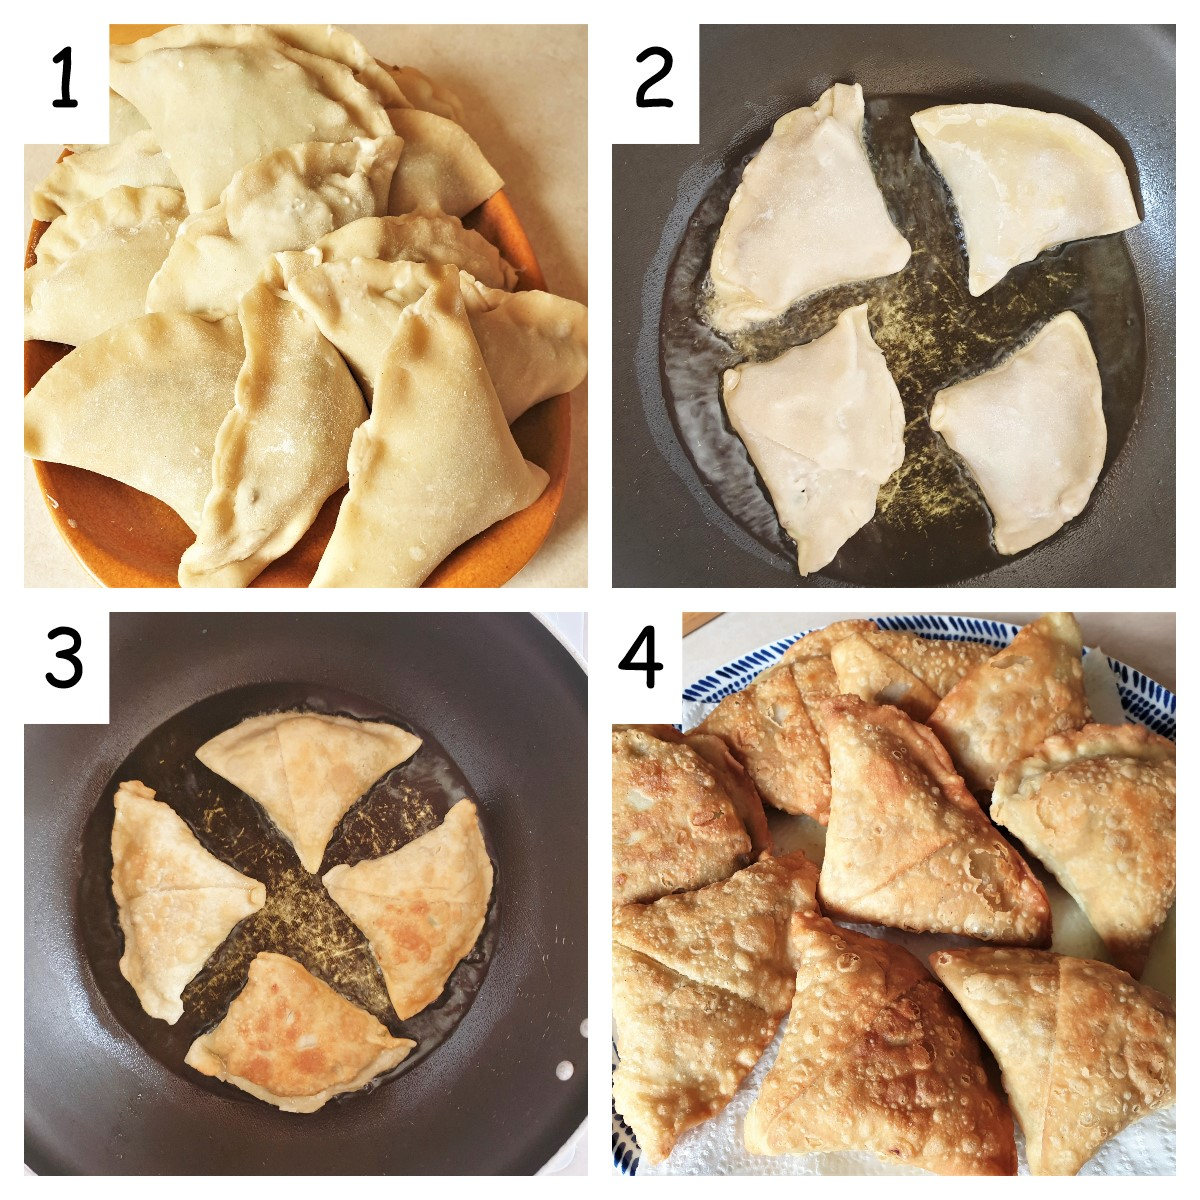 Collage of 4 images showing how to fry beef samosas.